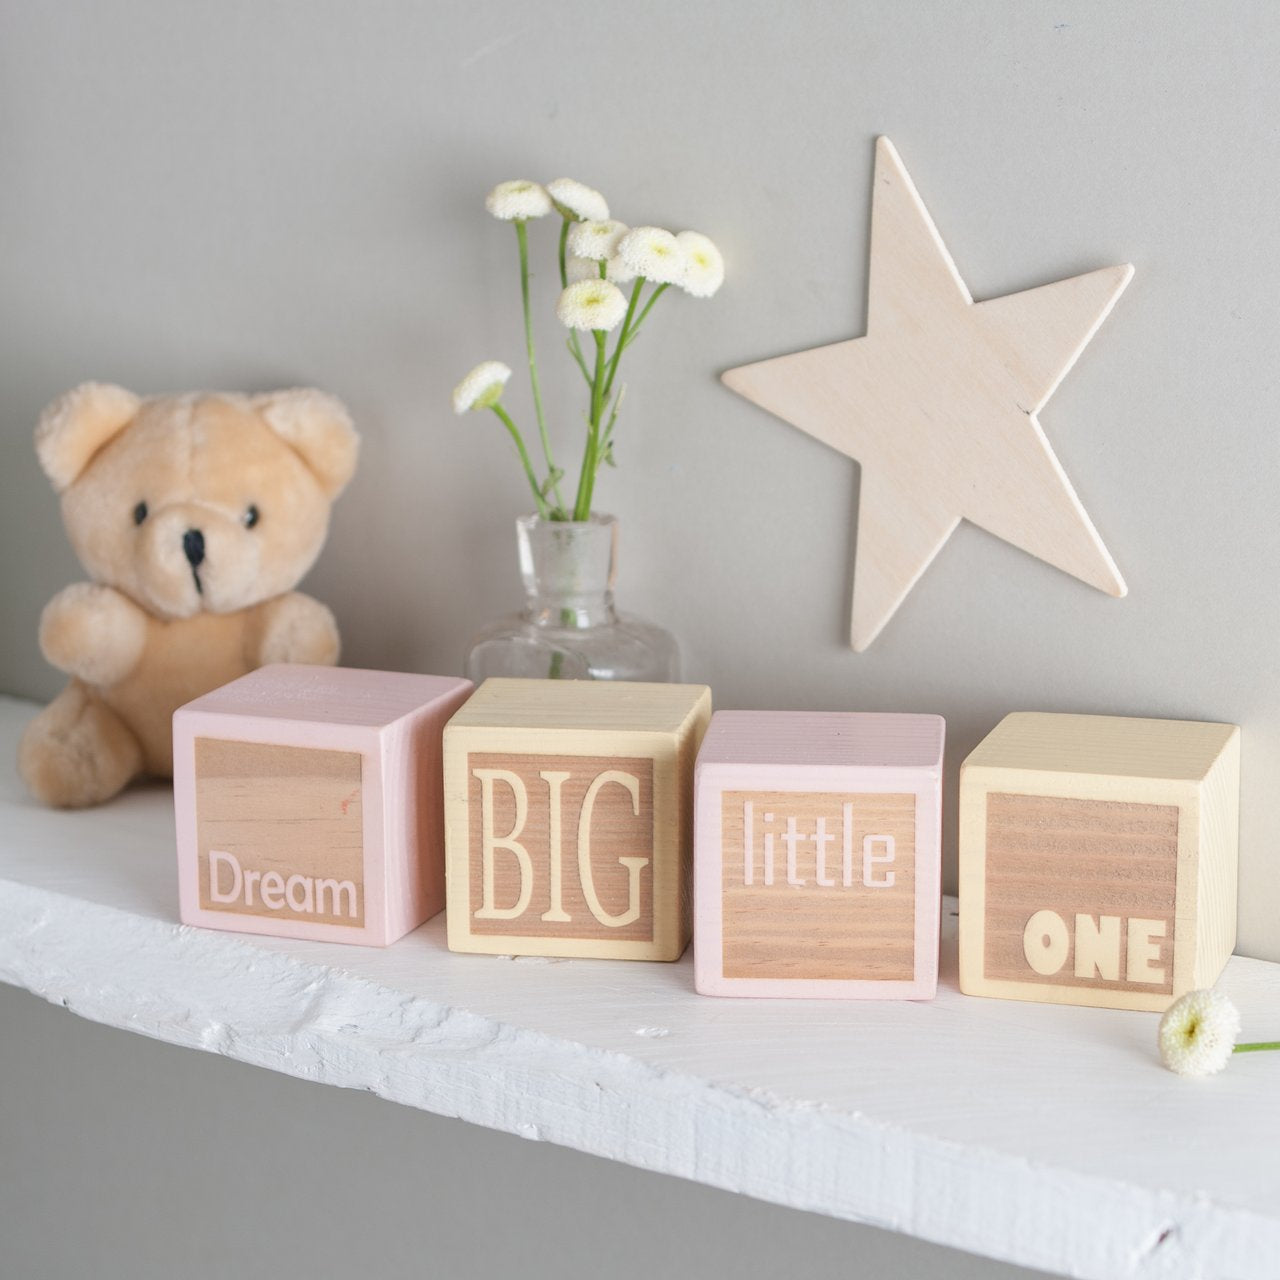 A personalised set of wooden pine blocks in your own colour choice, engraved with the words Dream Big Little One